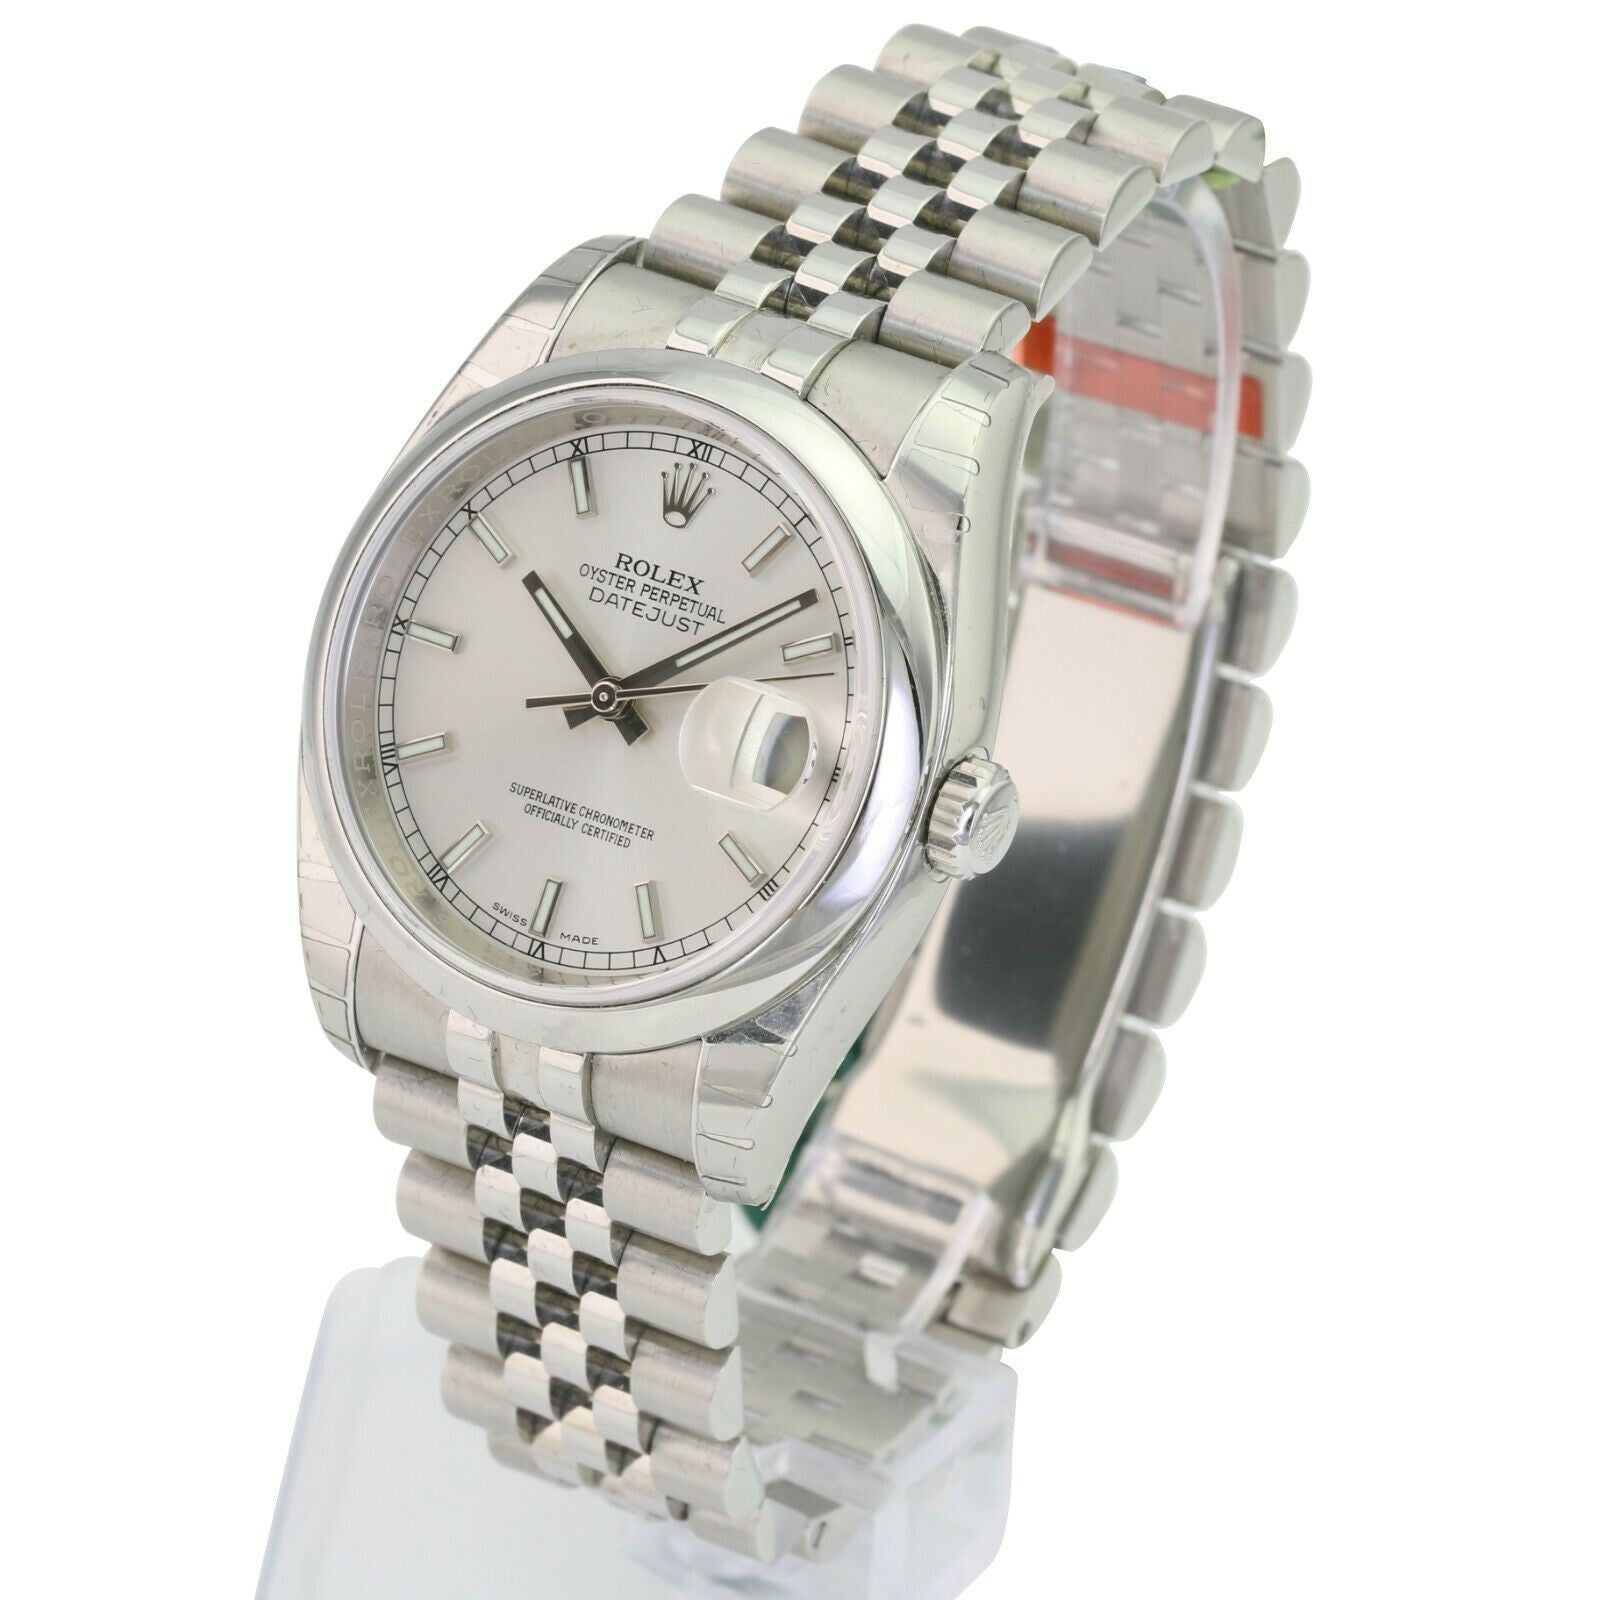 Unworn Rolex Factory Datejust Stainless Steel 116200 Silver Index Dial Smooth Bezel 36mm - Time Keepers Vault